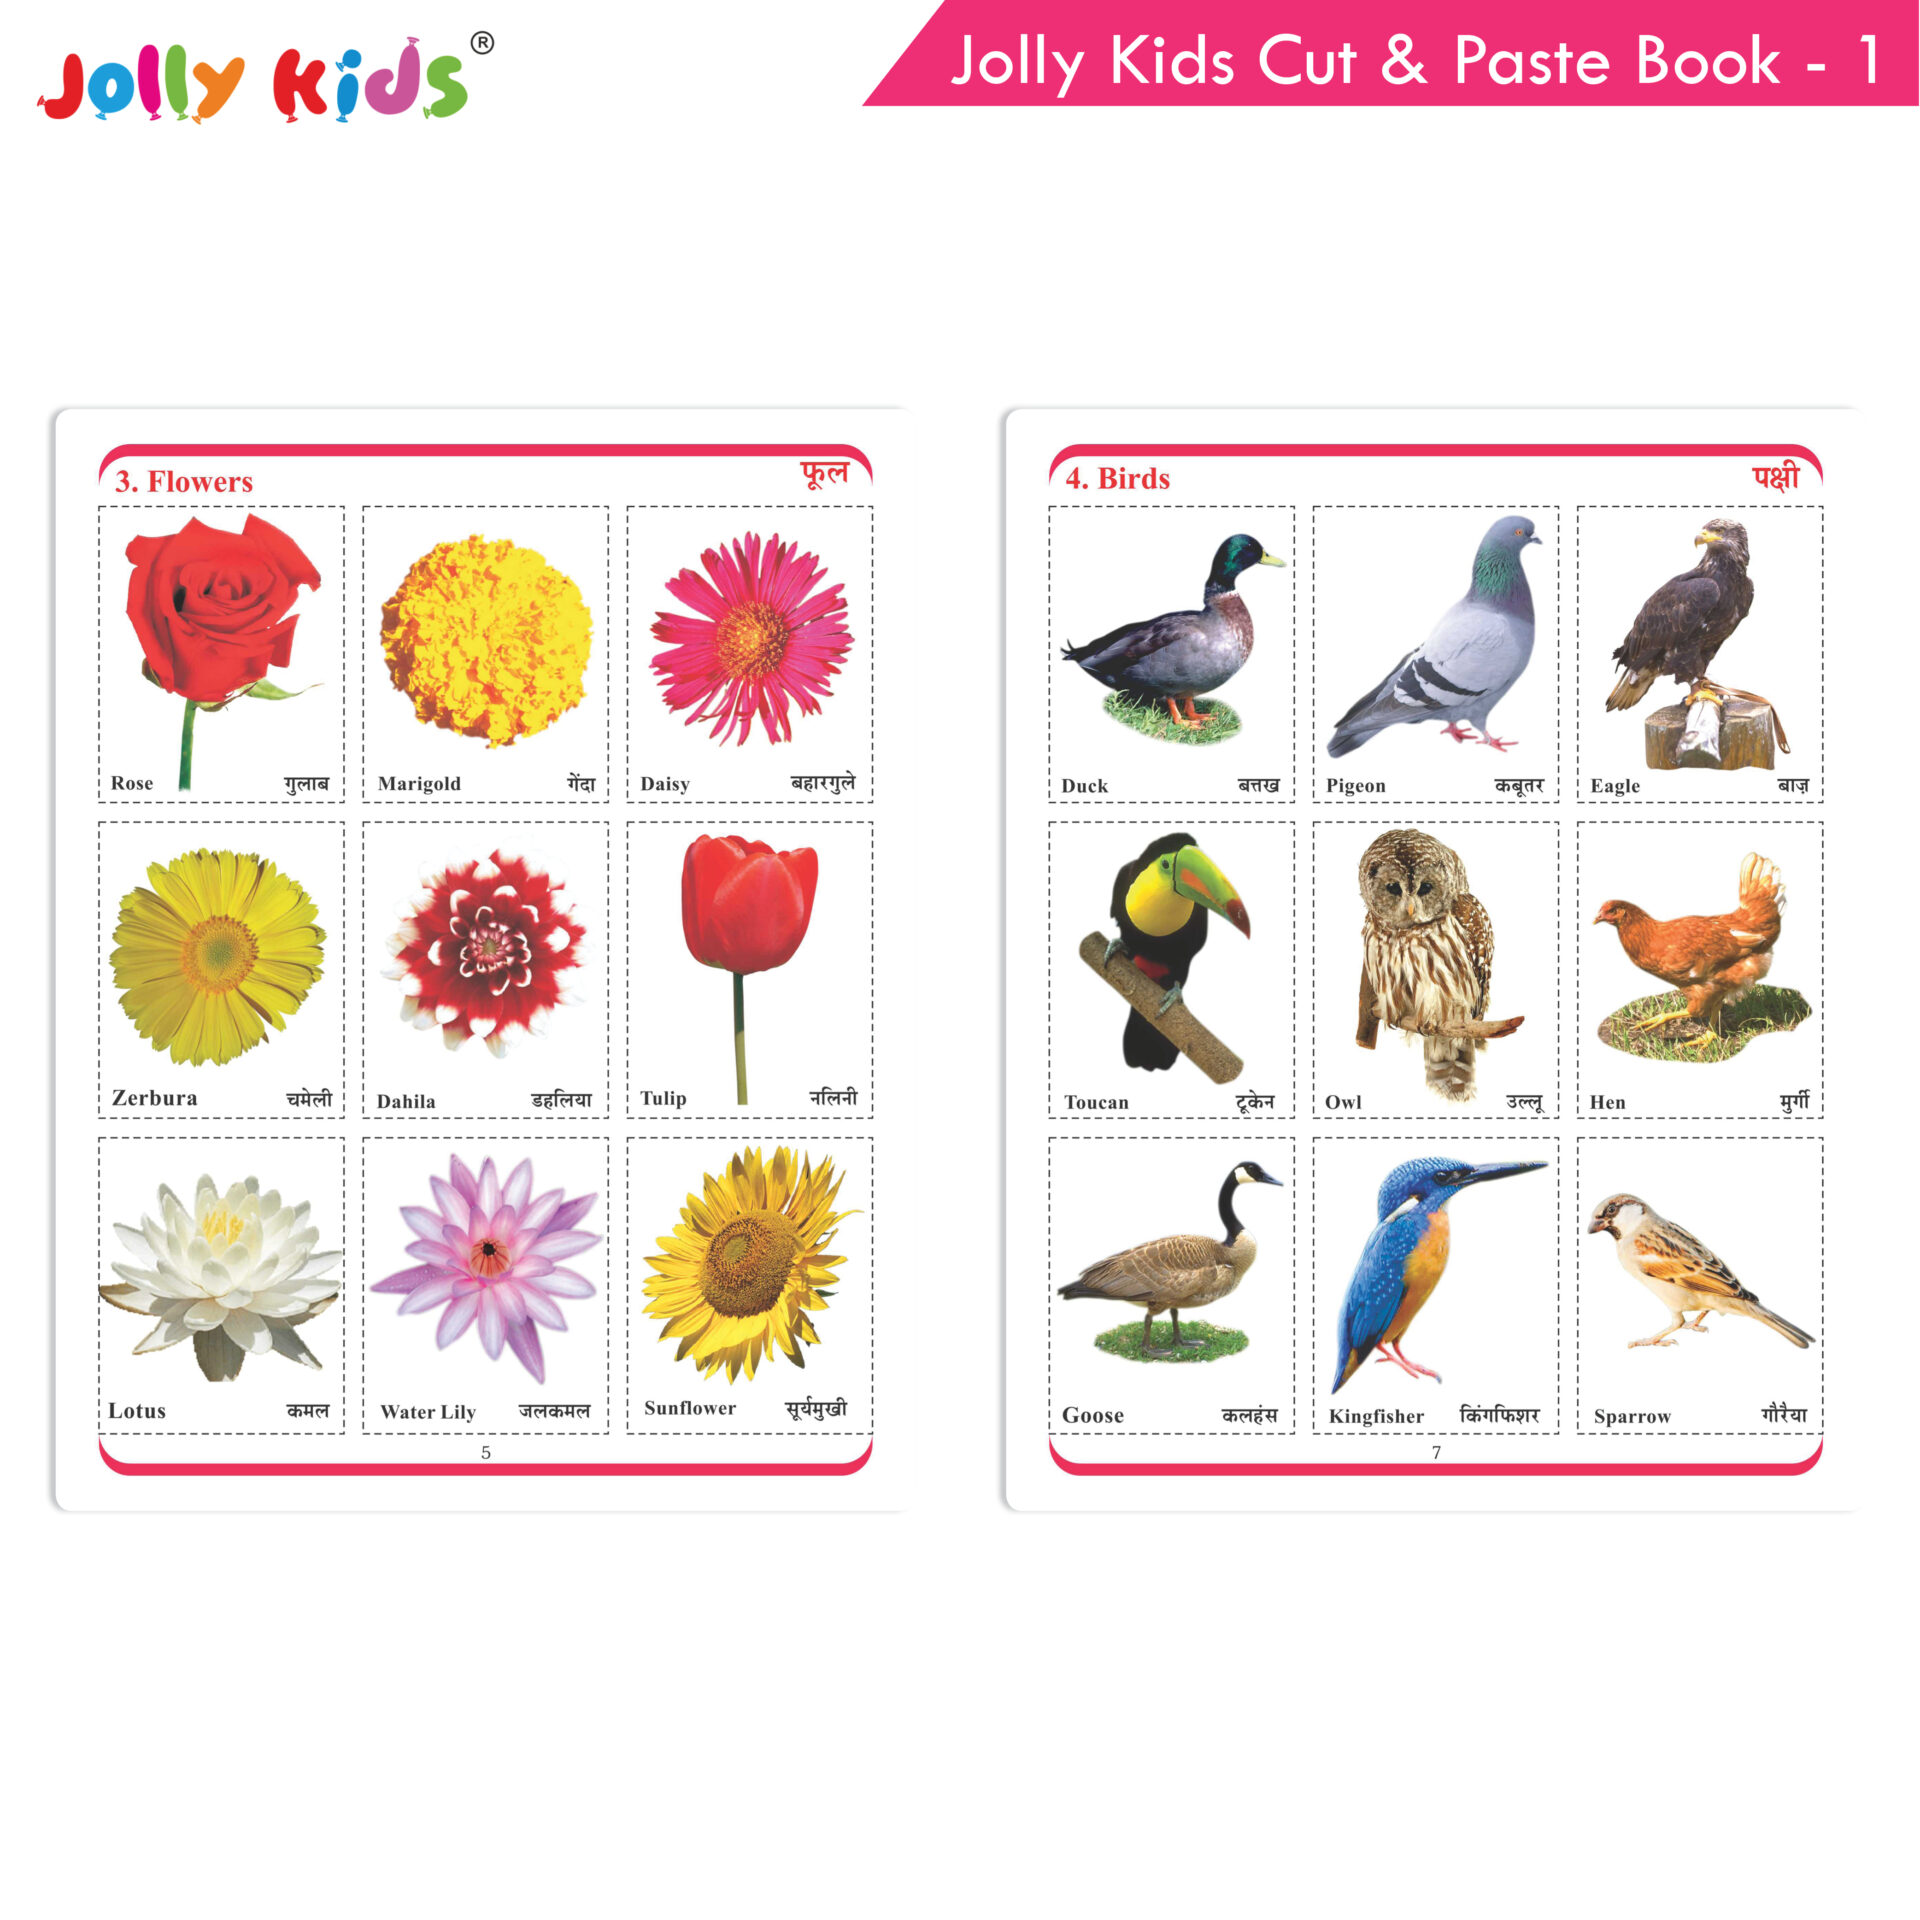 Jolly Kids Cut and Paste Book 1 4